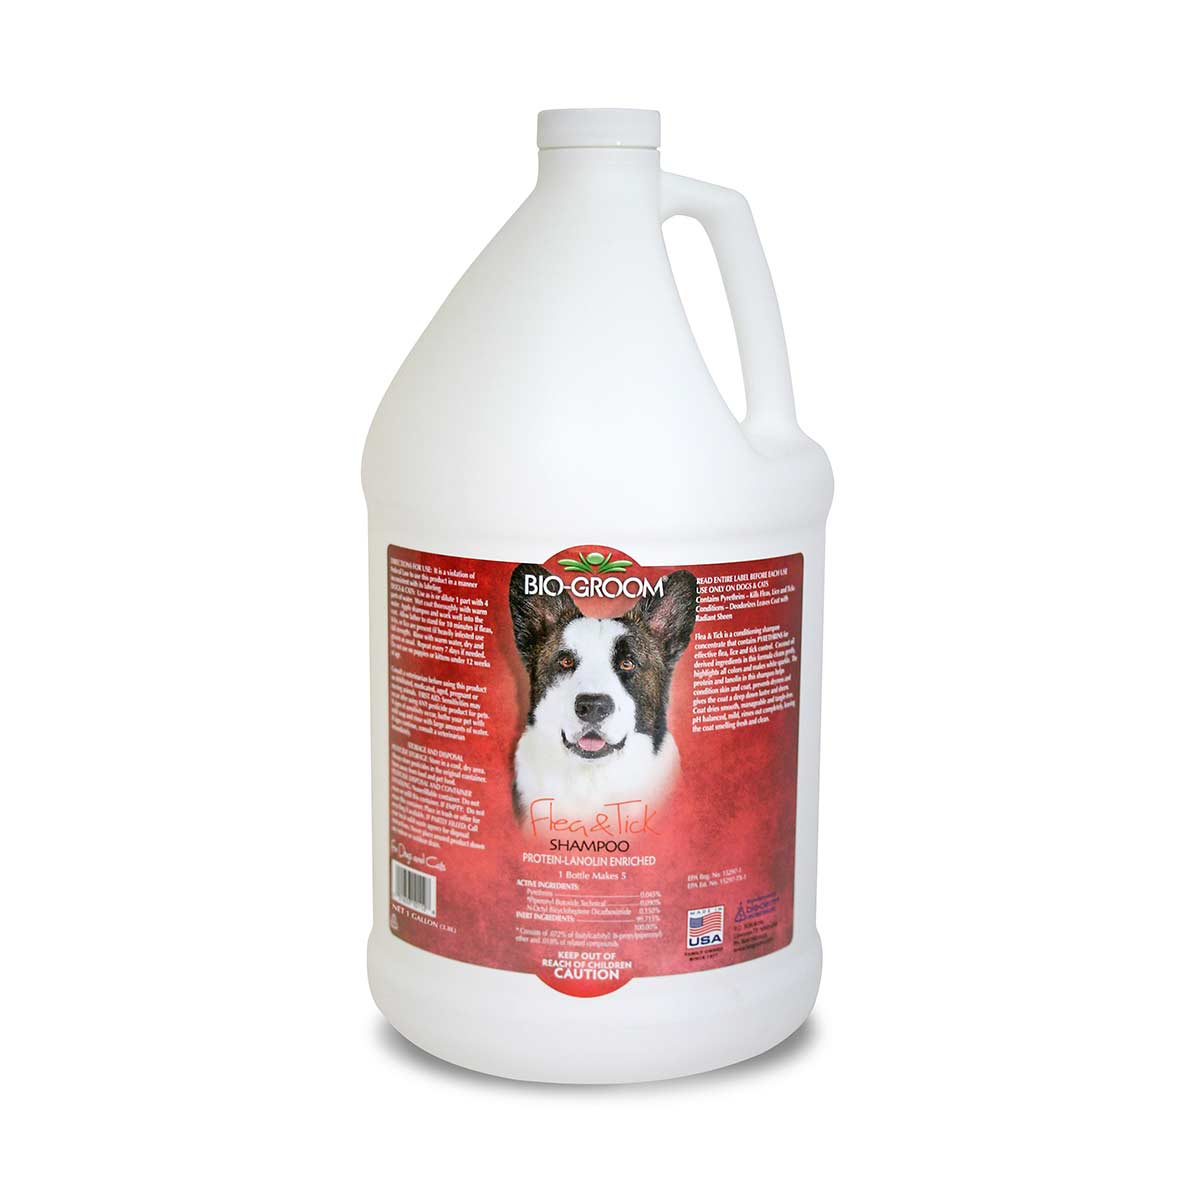 Bio-Groom Flea & Tick Dog Shampoo Gallon 4:1